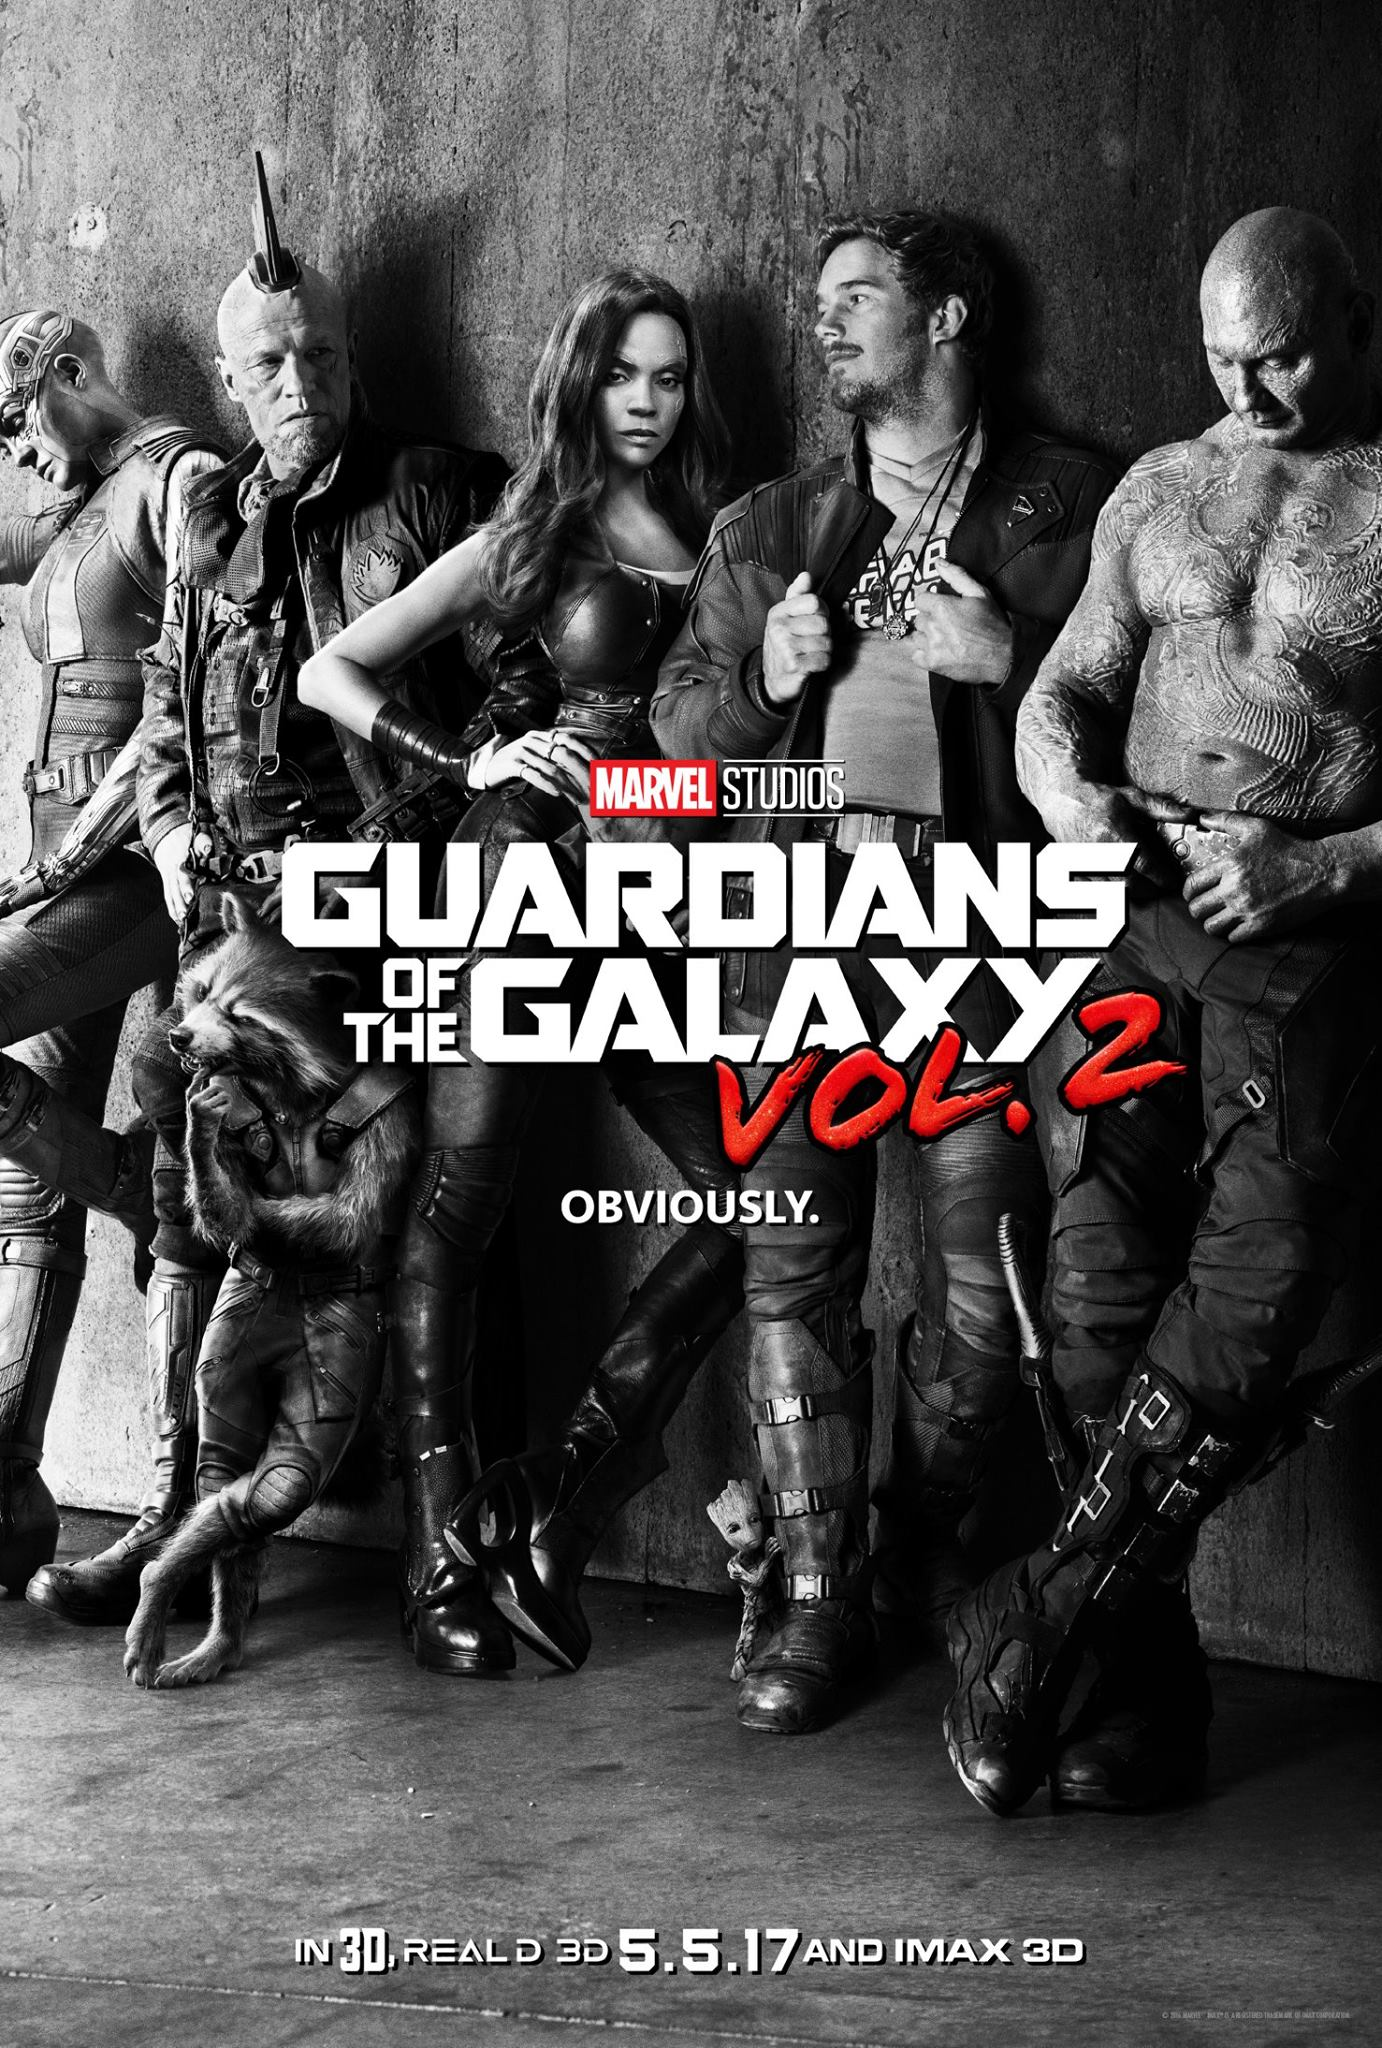 Guardians of the Galazy Vol 2